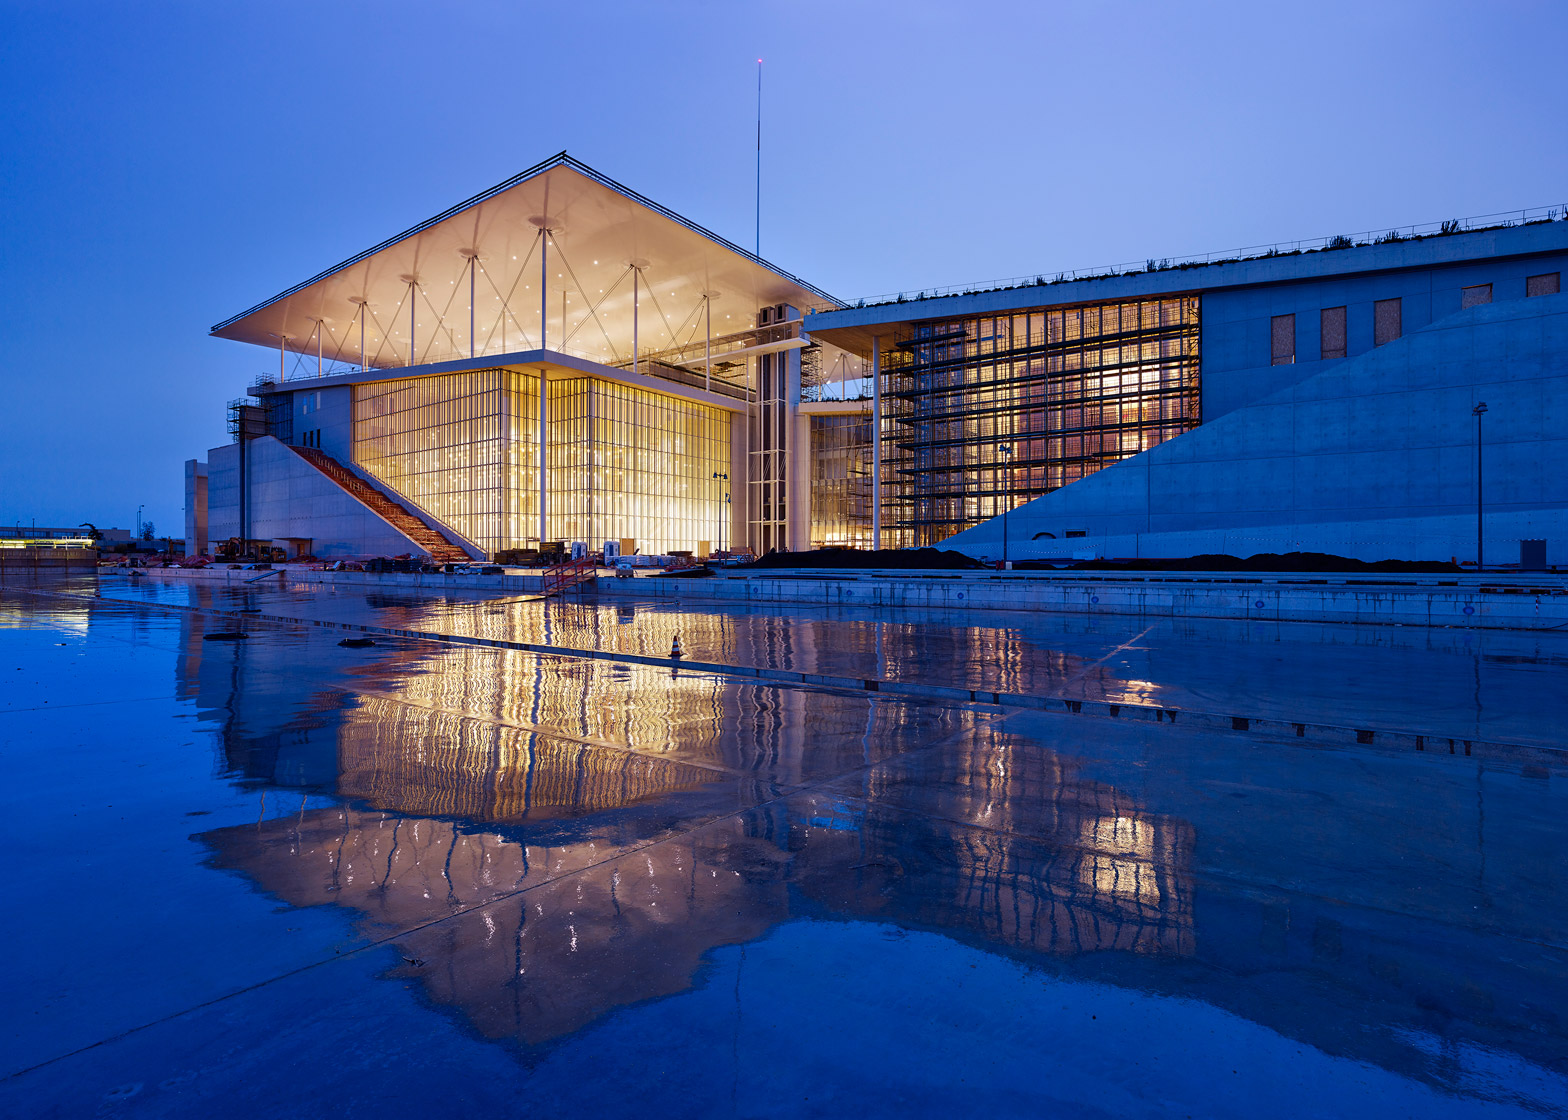 Stavros Niarchos Foundation Cultural Centre designed by Renzo Piano for Athens